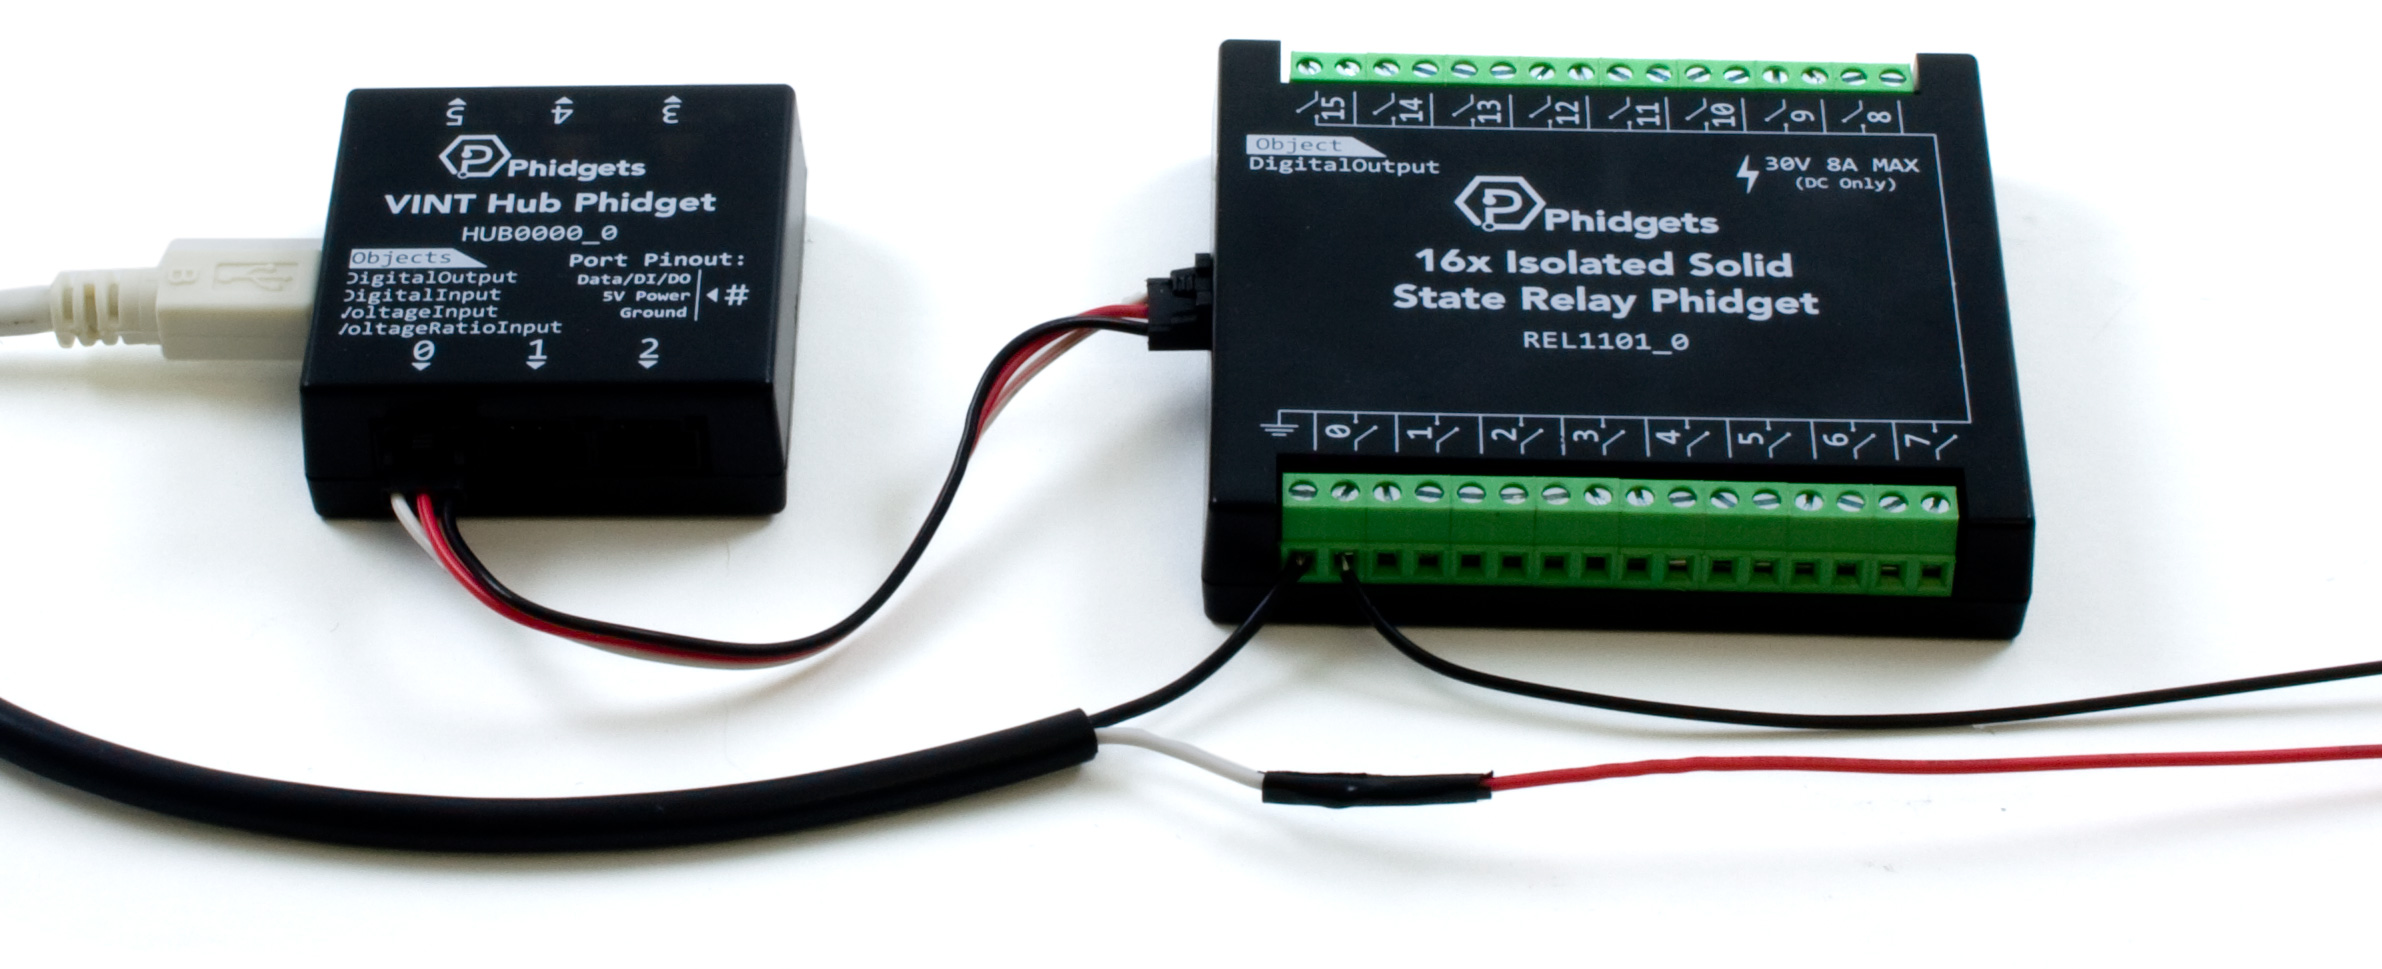 16x Isolated Solid State Relay Phidget Rel1101 0 At Phidgets Dc Power Relays Scale Note All Additional Hardware Sold Separately